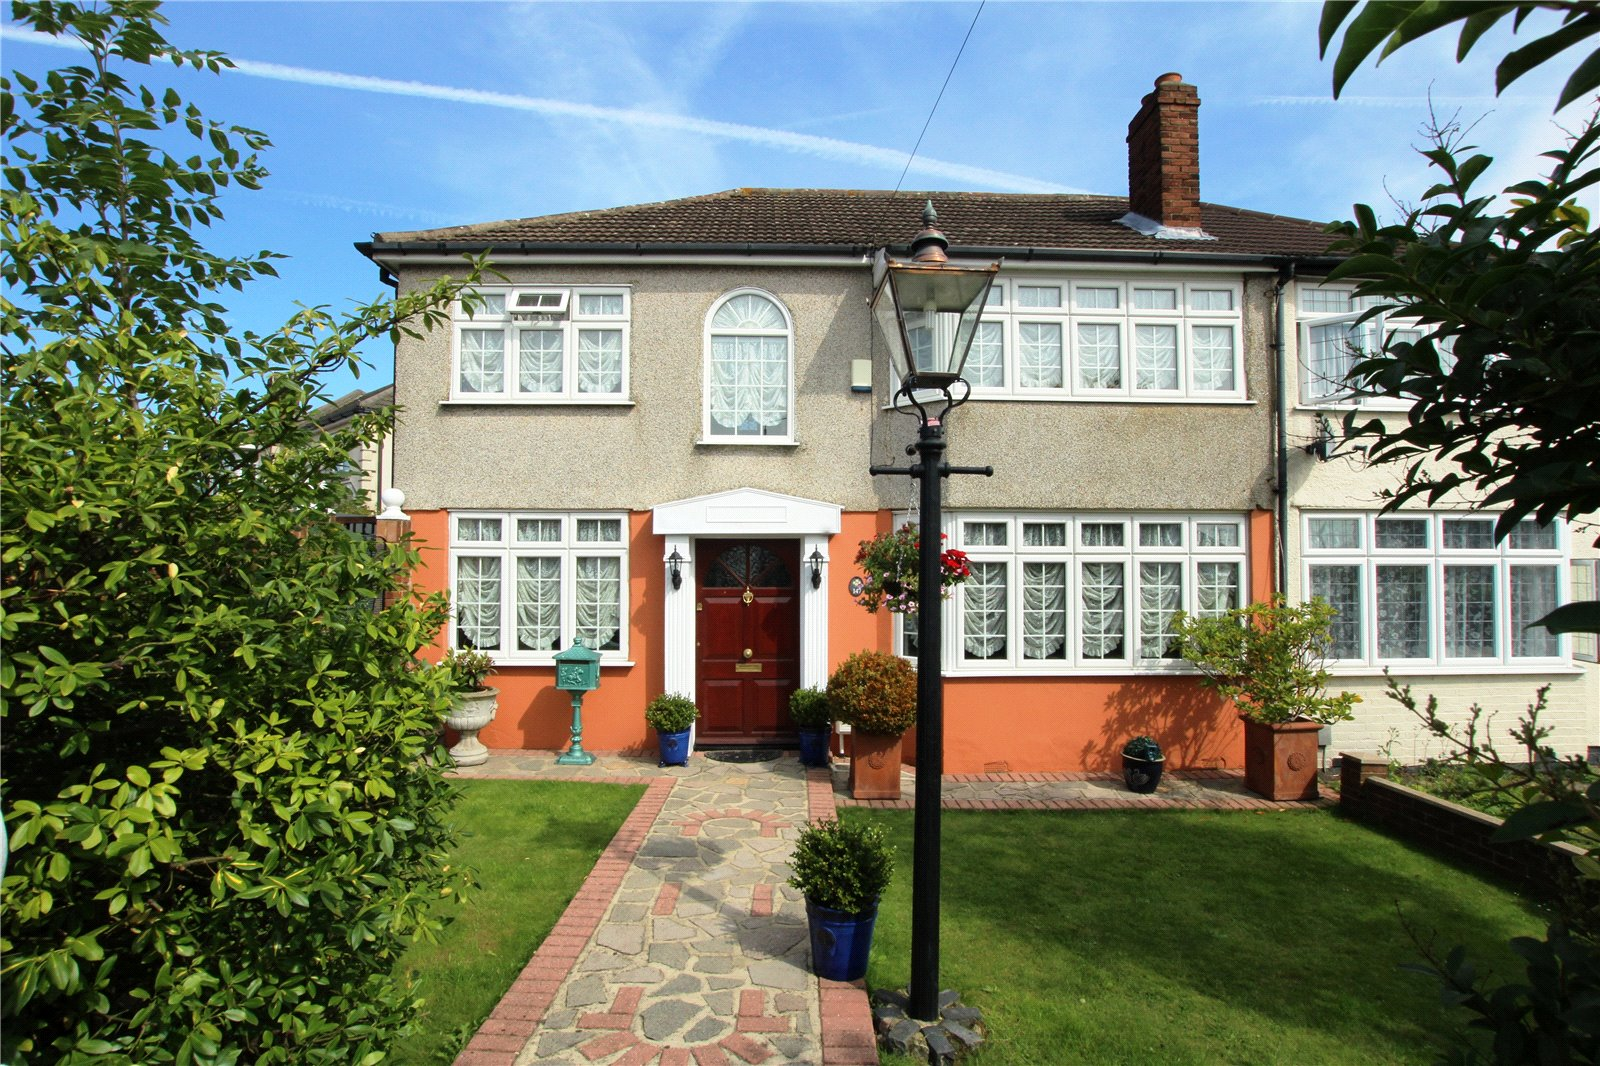 Westwood Lane, South Welling, Kent, DA16